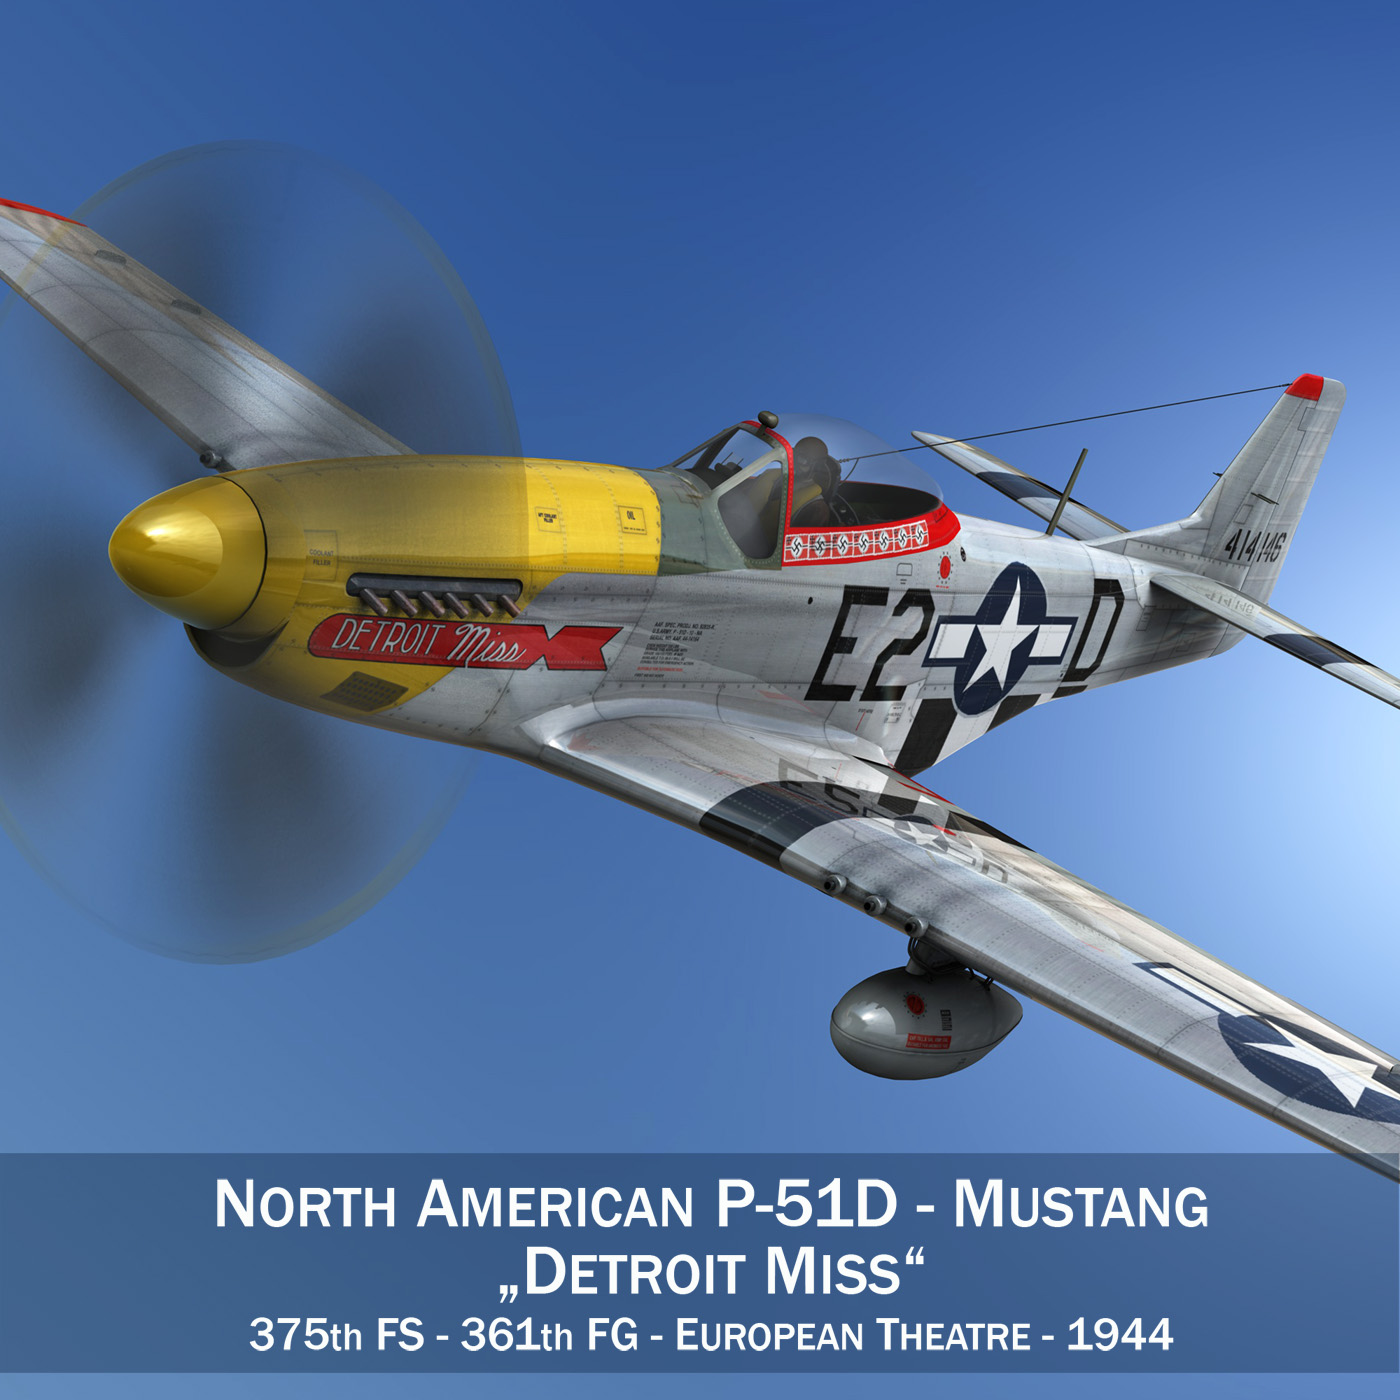 north american p-51d – mustang – detroit miss 3d model 3ds fbx c4d lwo obj 267592